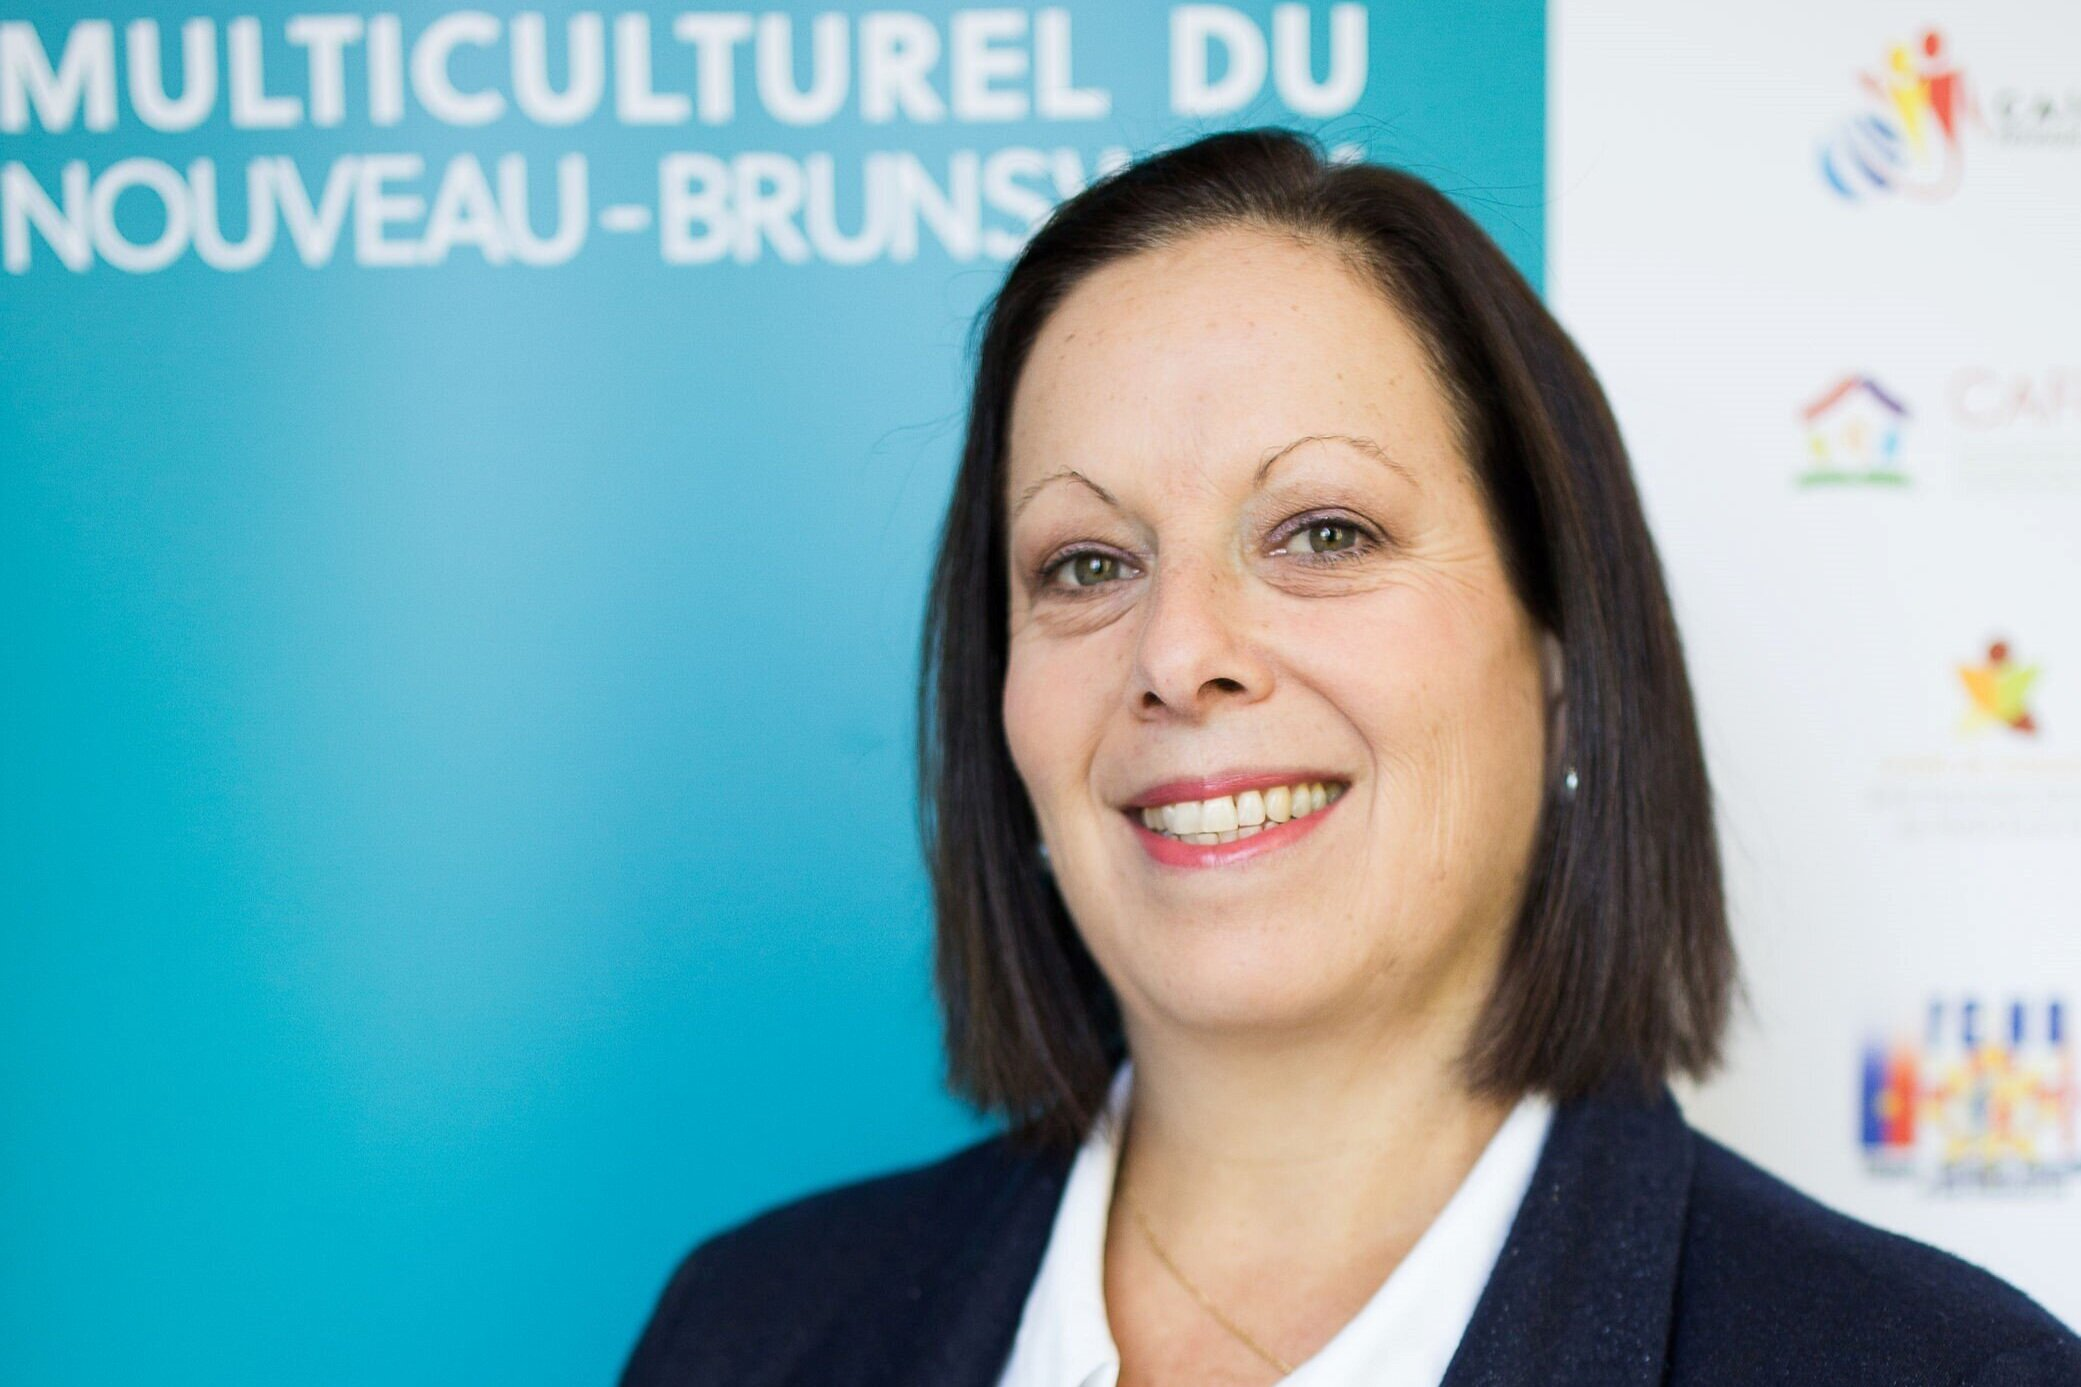 Abby David - Manager of Employment Initiatives at New Brunswick Multicultural Council